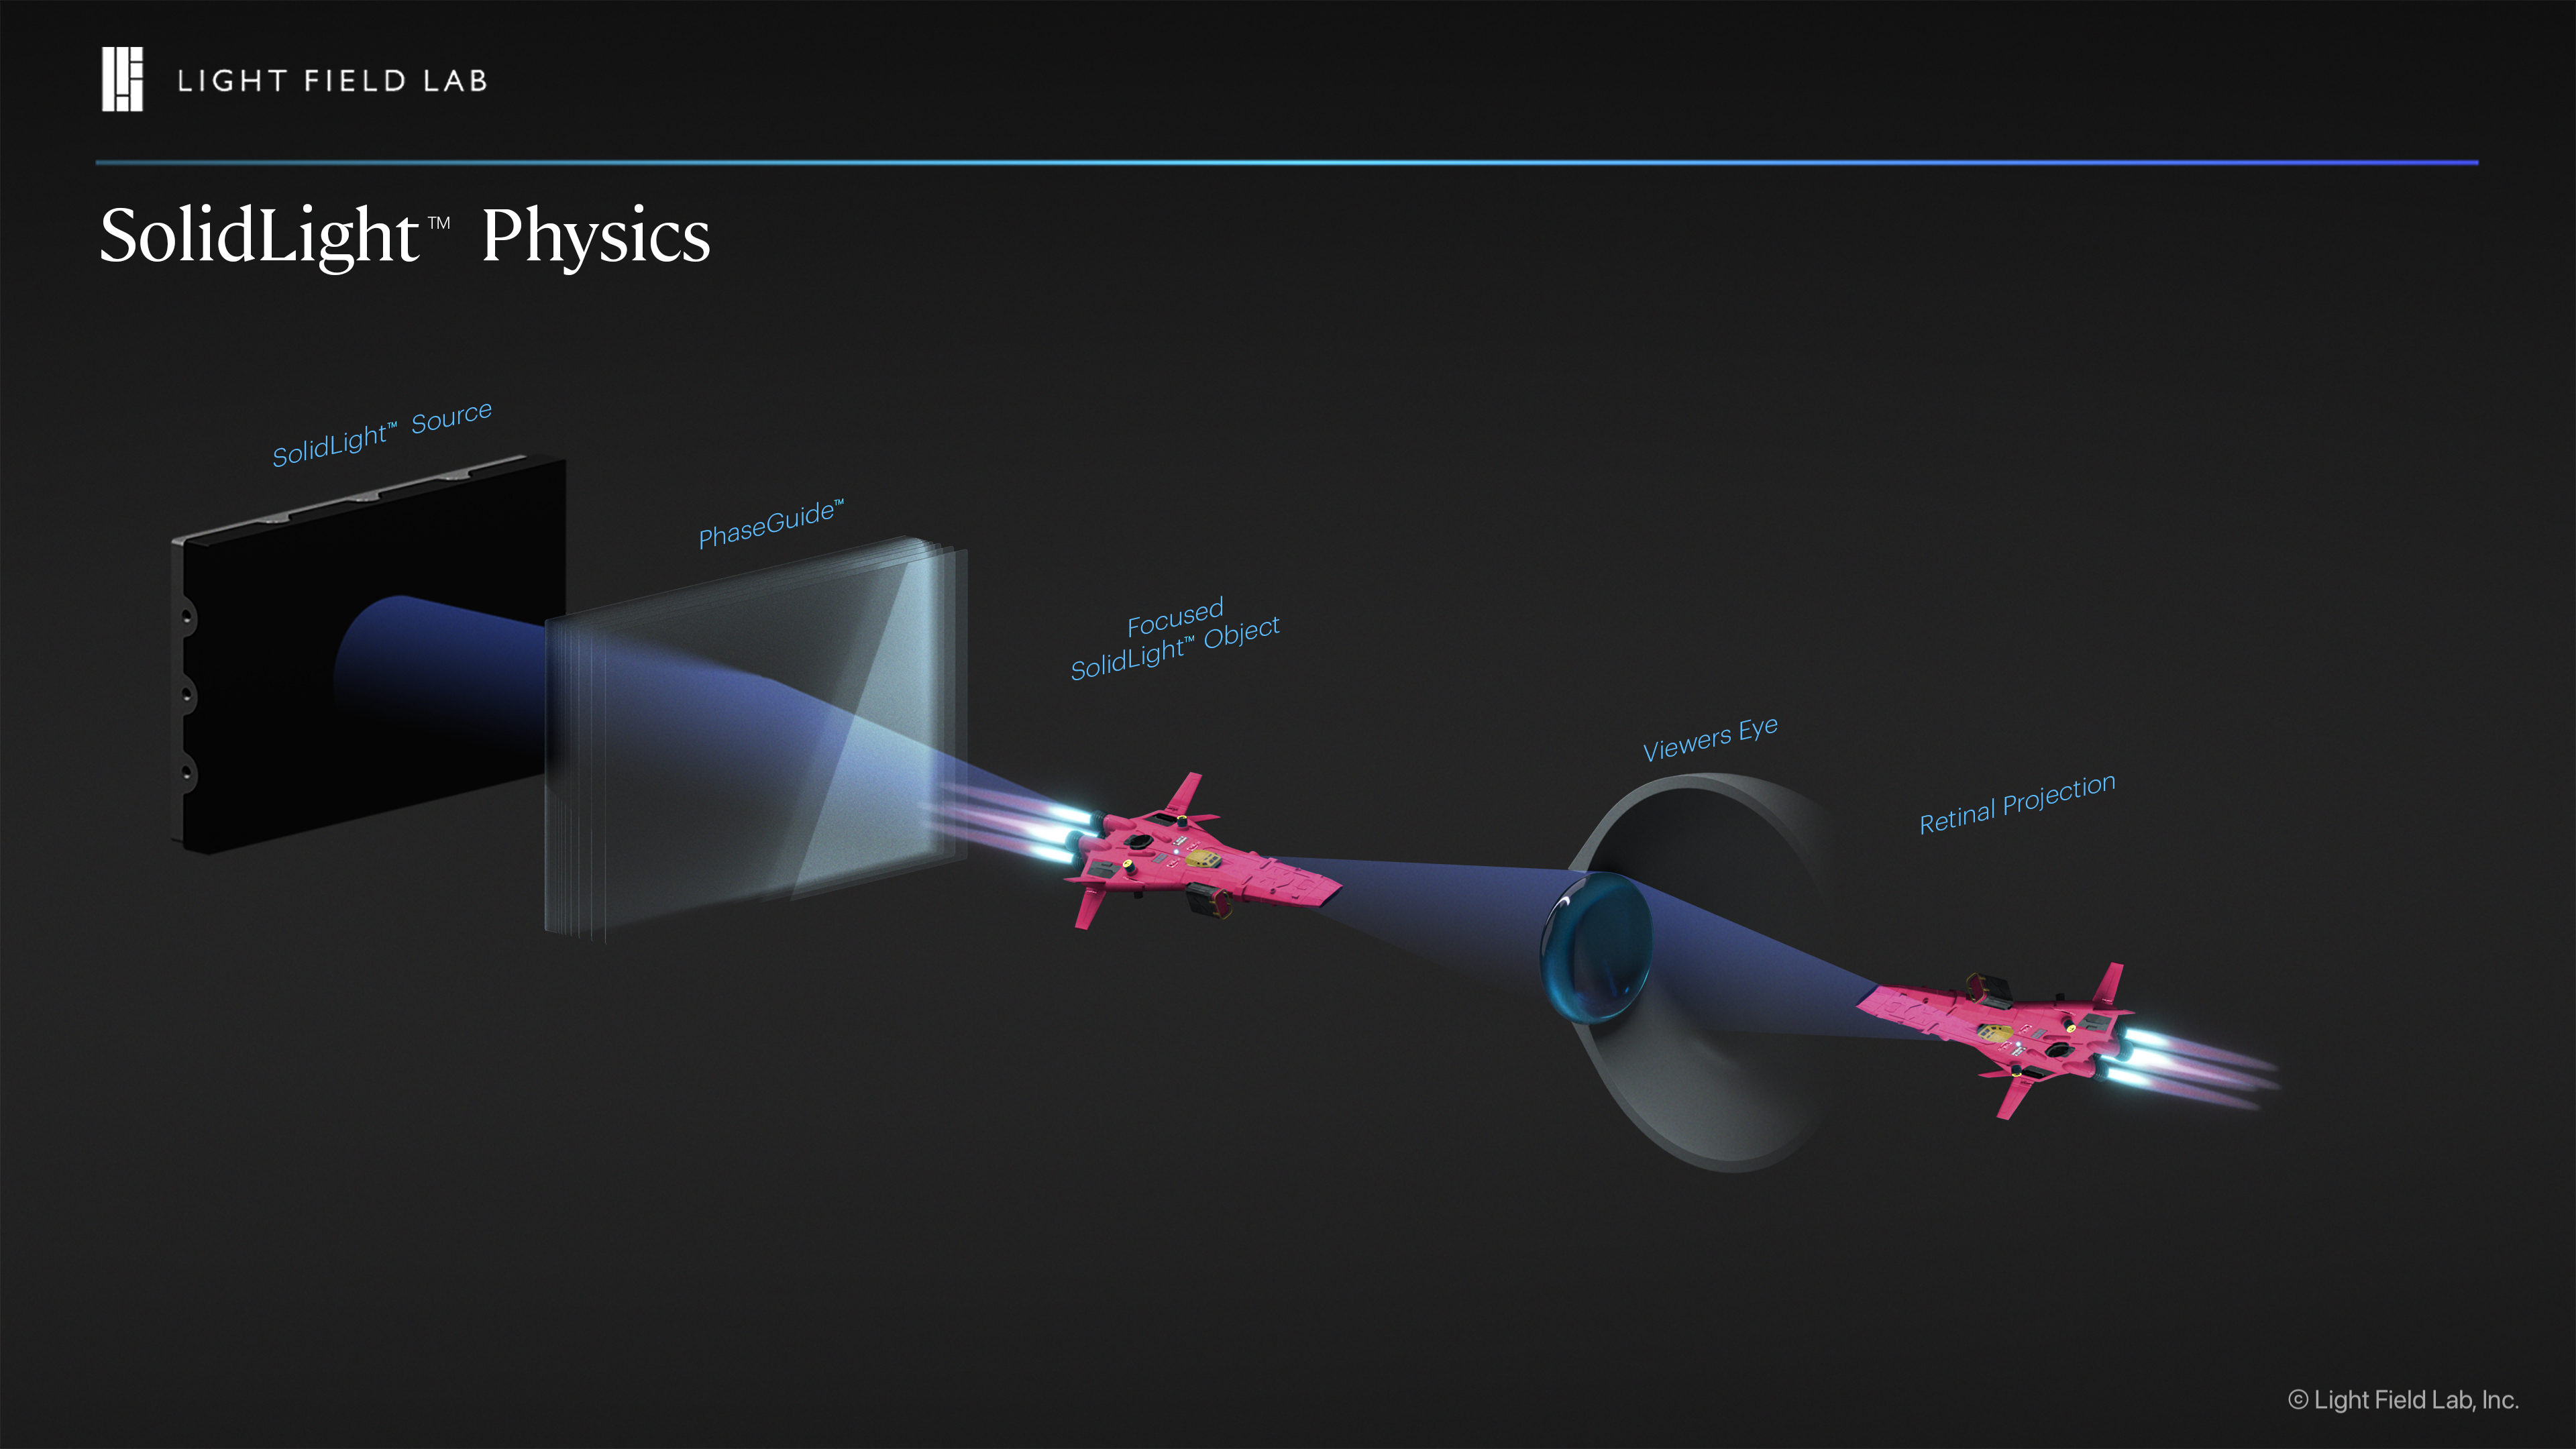 Graphic showing SolidLight physics